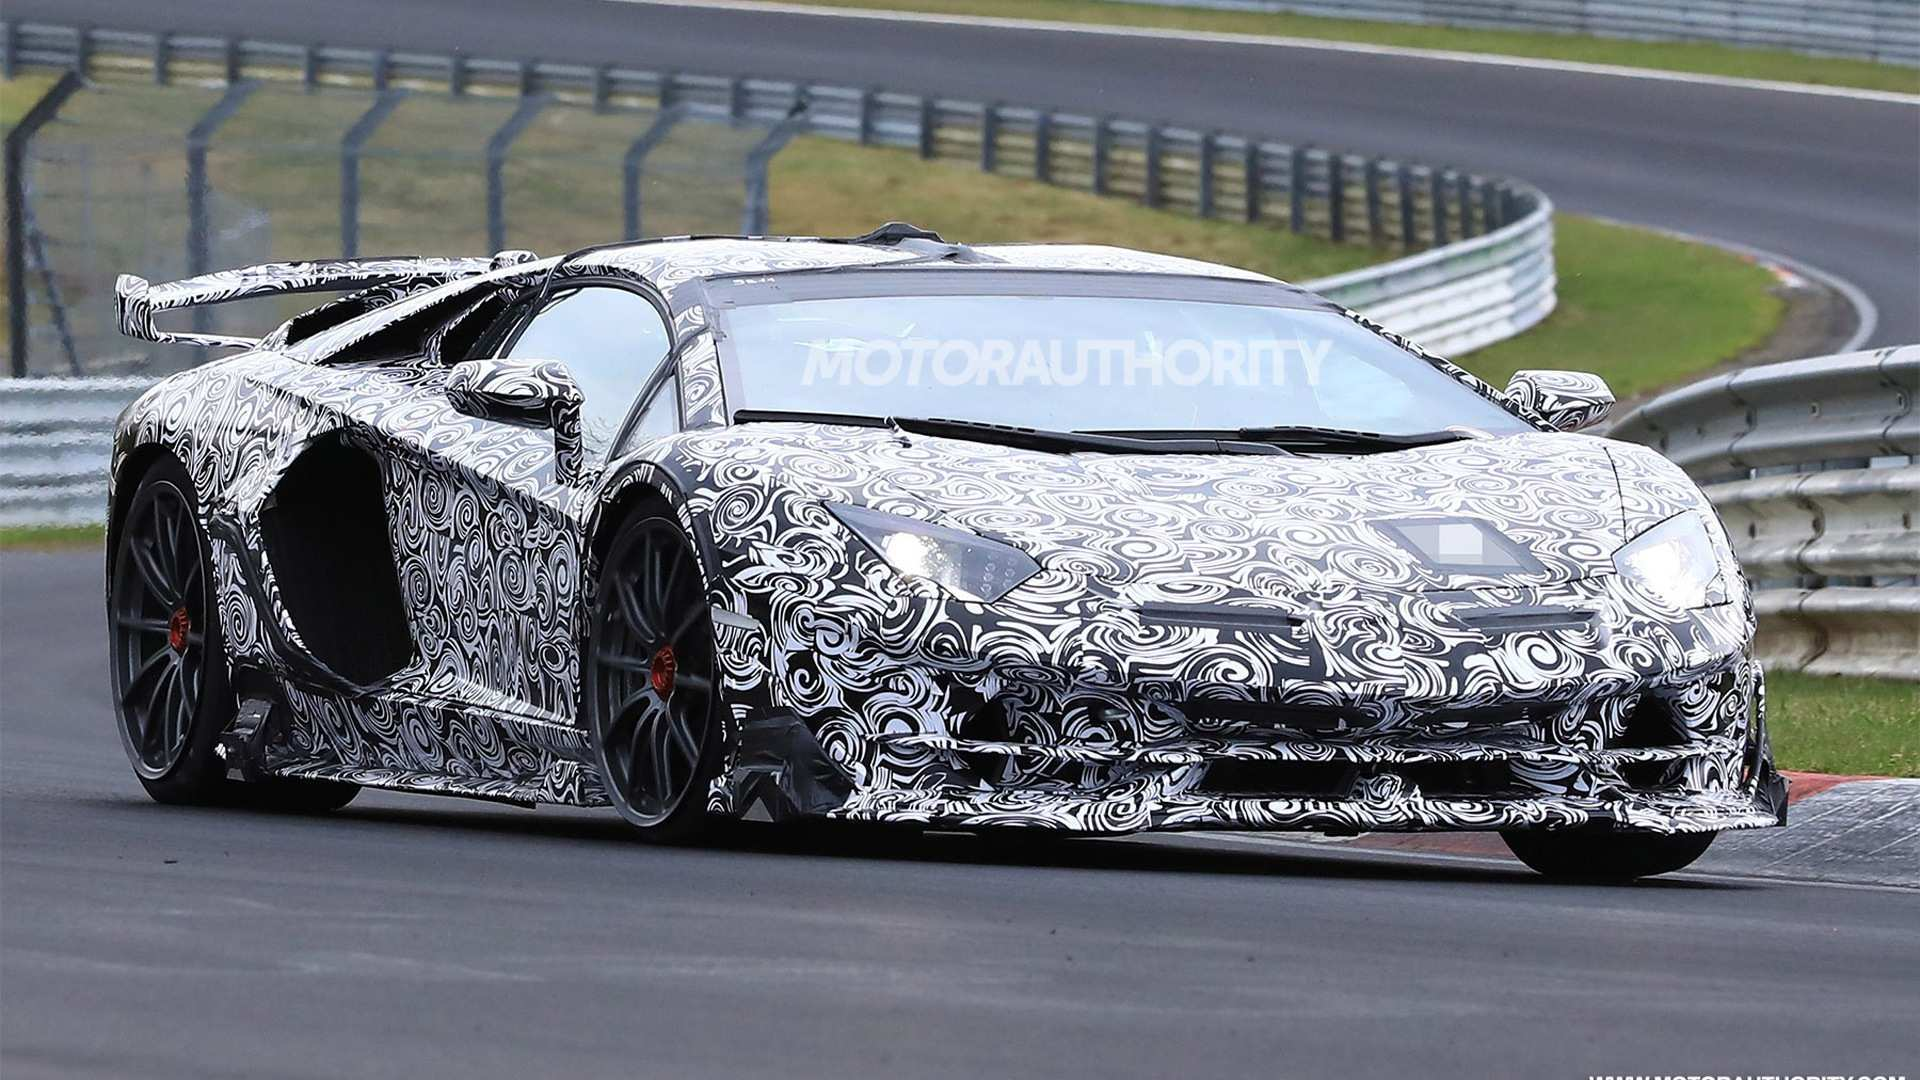 64 New 2020 Lamborghini Prices for 2020 Lamborghini